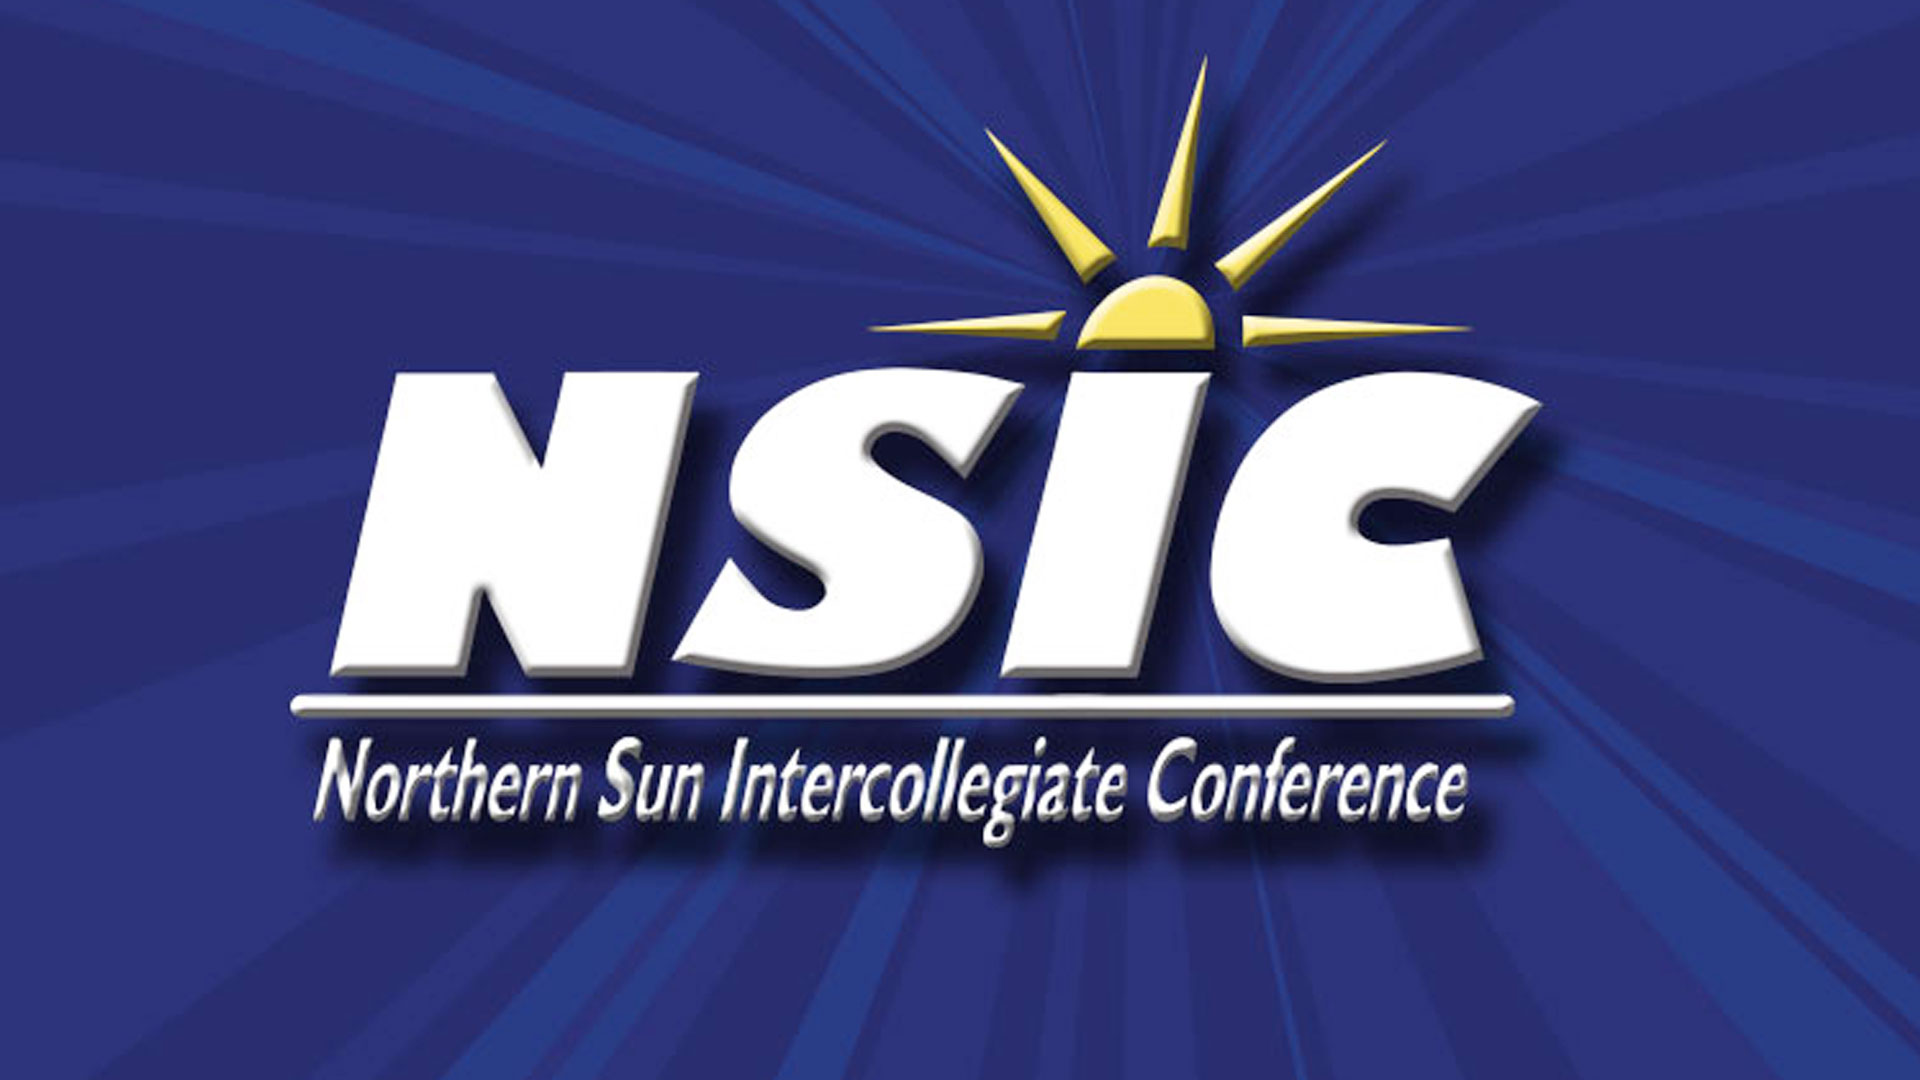 KELO NSIC Northern Sun Intercollegiate Conference logo